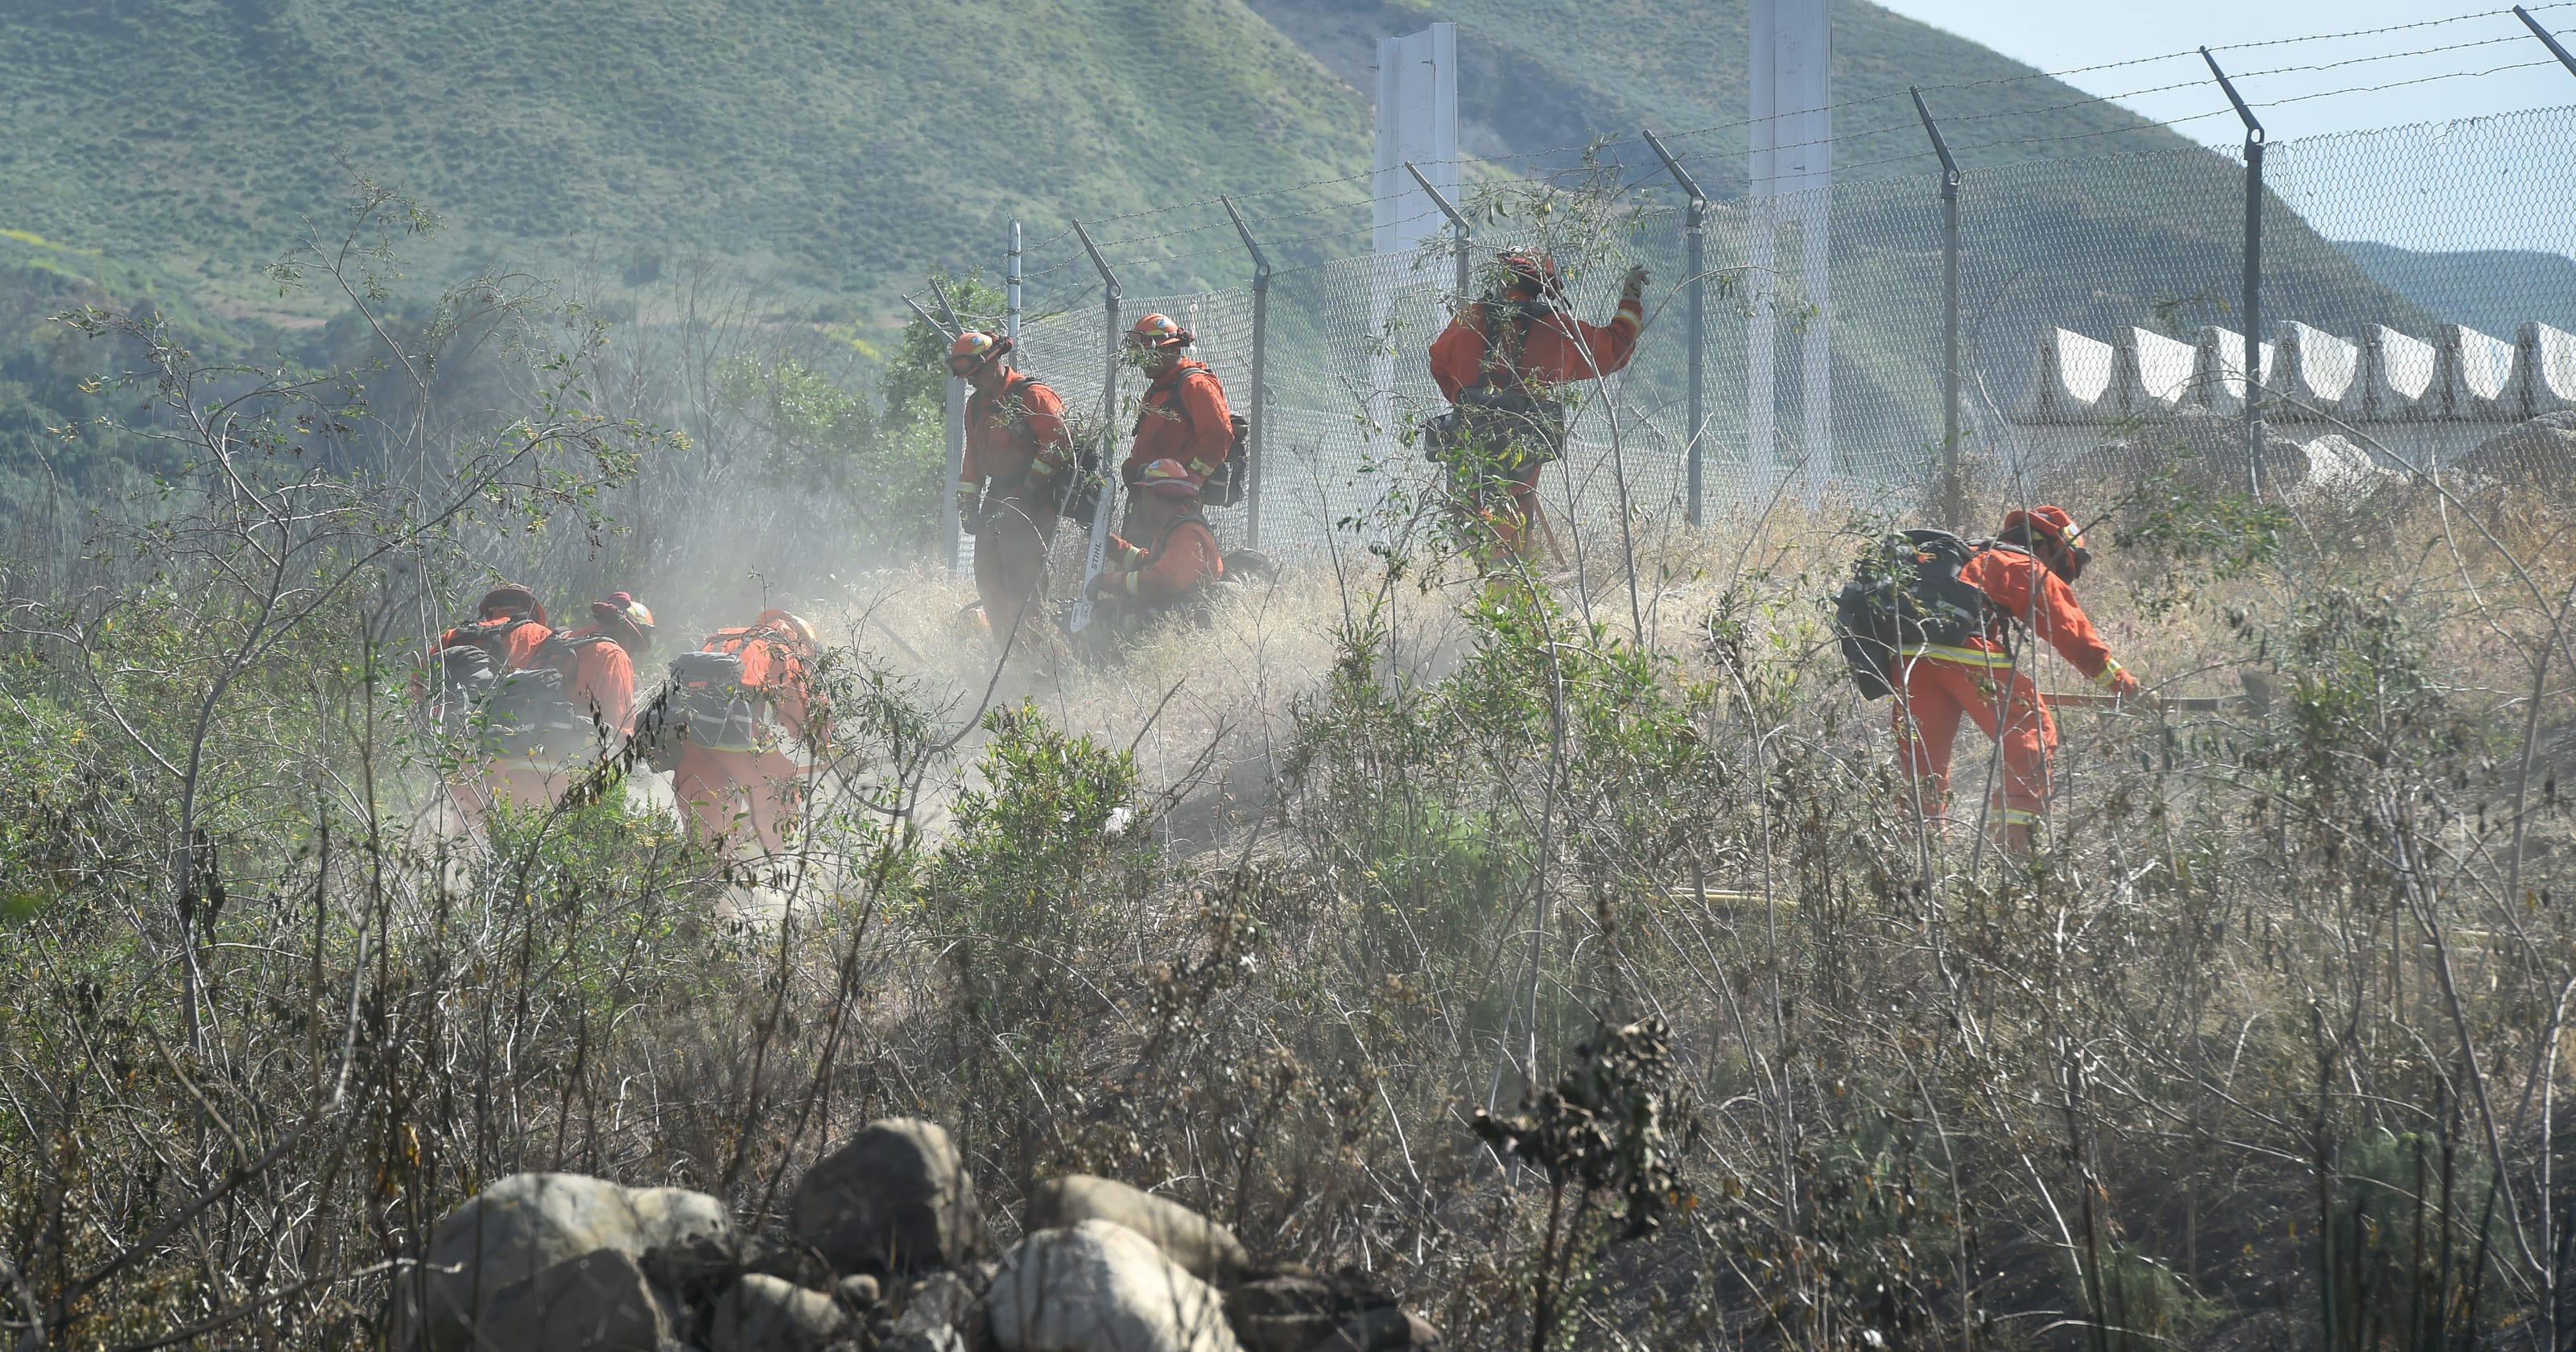 Ex-inmates face hurdles in firefighting careers